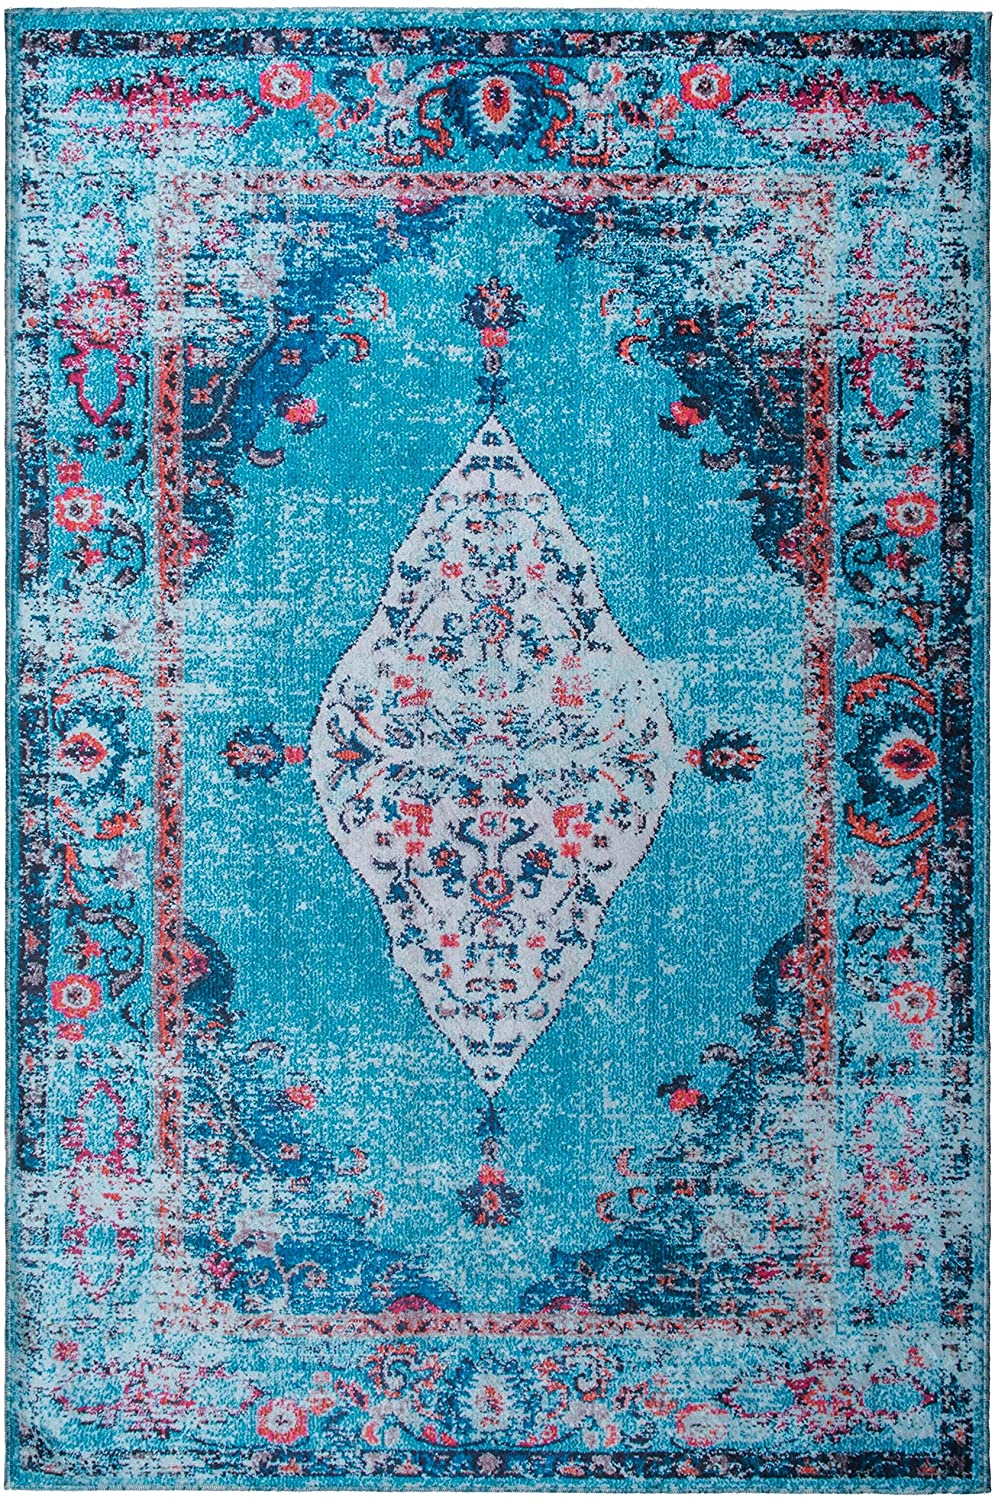 Mylife Rugs Traditional Vintage Non Slip Machine Washable Distressed Printed Area Rug, Turquoise Red 4'x6'